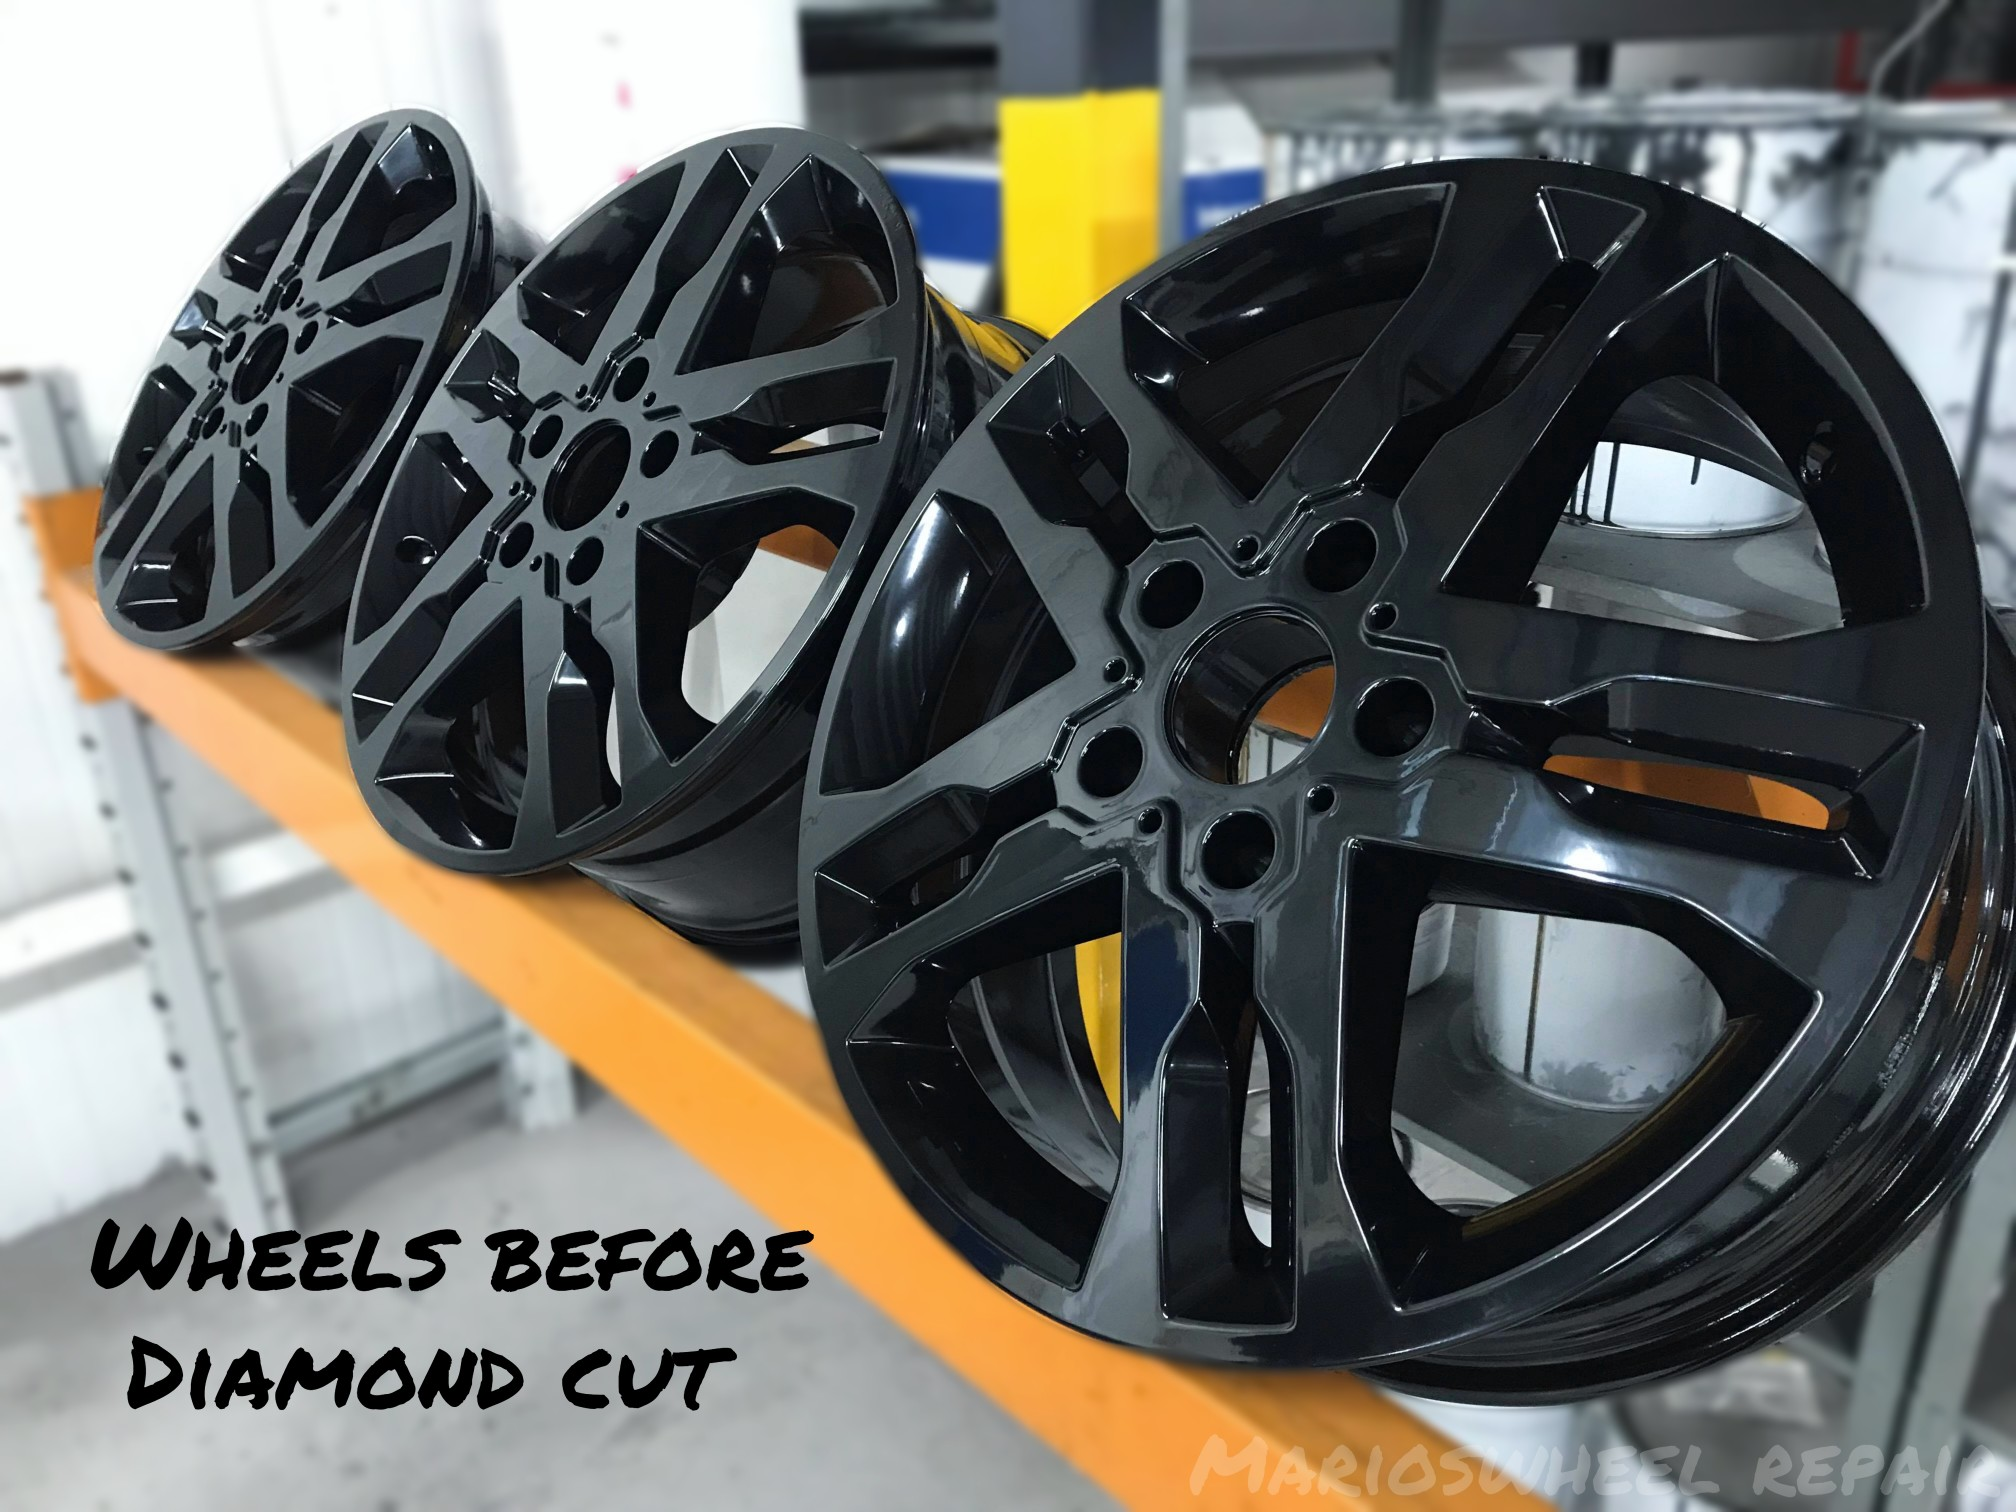 We have all the tools needed to remove, refit and balance tire up to 24'' and the practical experience you would hope to restore your cracked wheel.